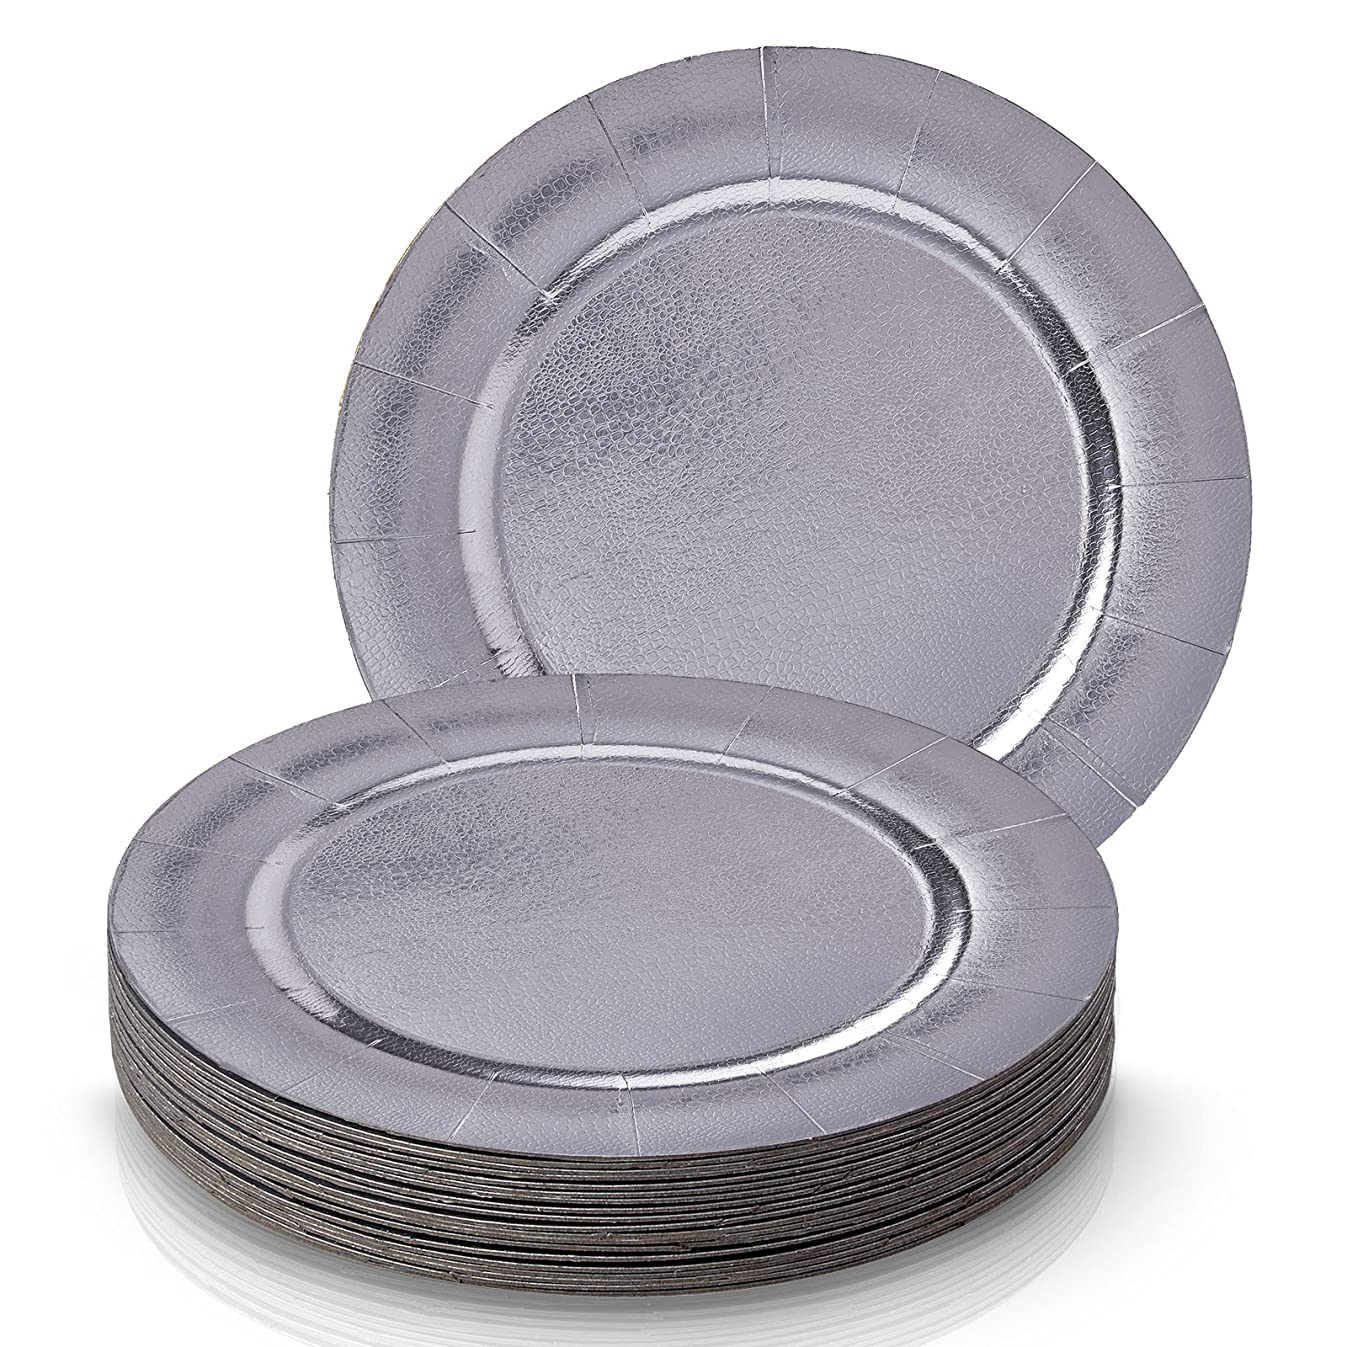 DISPOSABLE ROUND CHARGER PLATES - 20pc (Metallic/Silver)